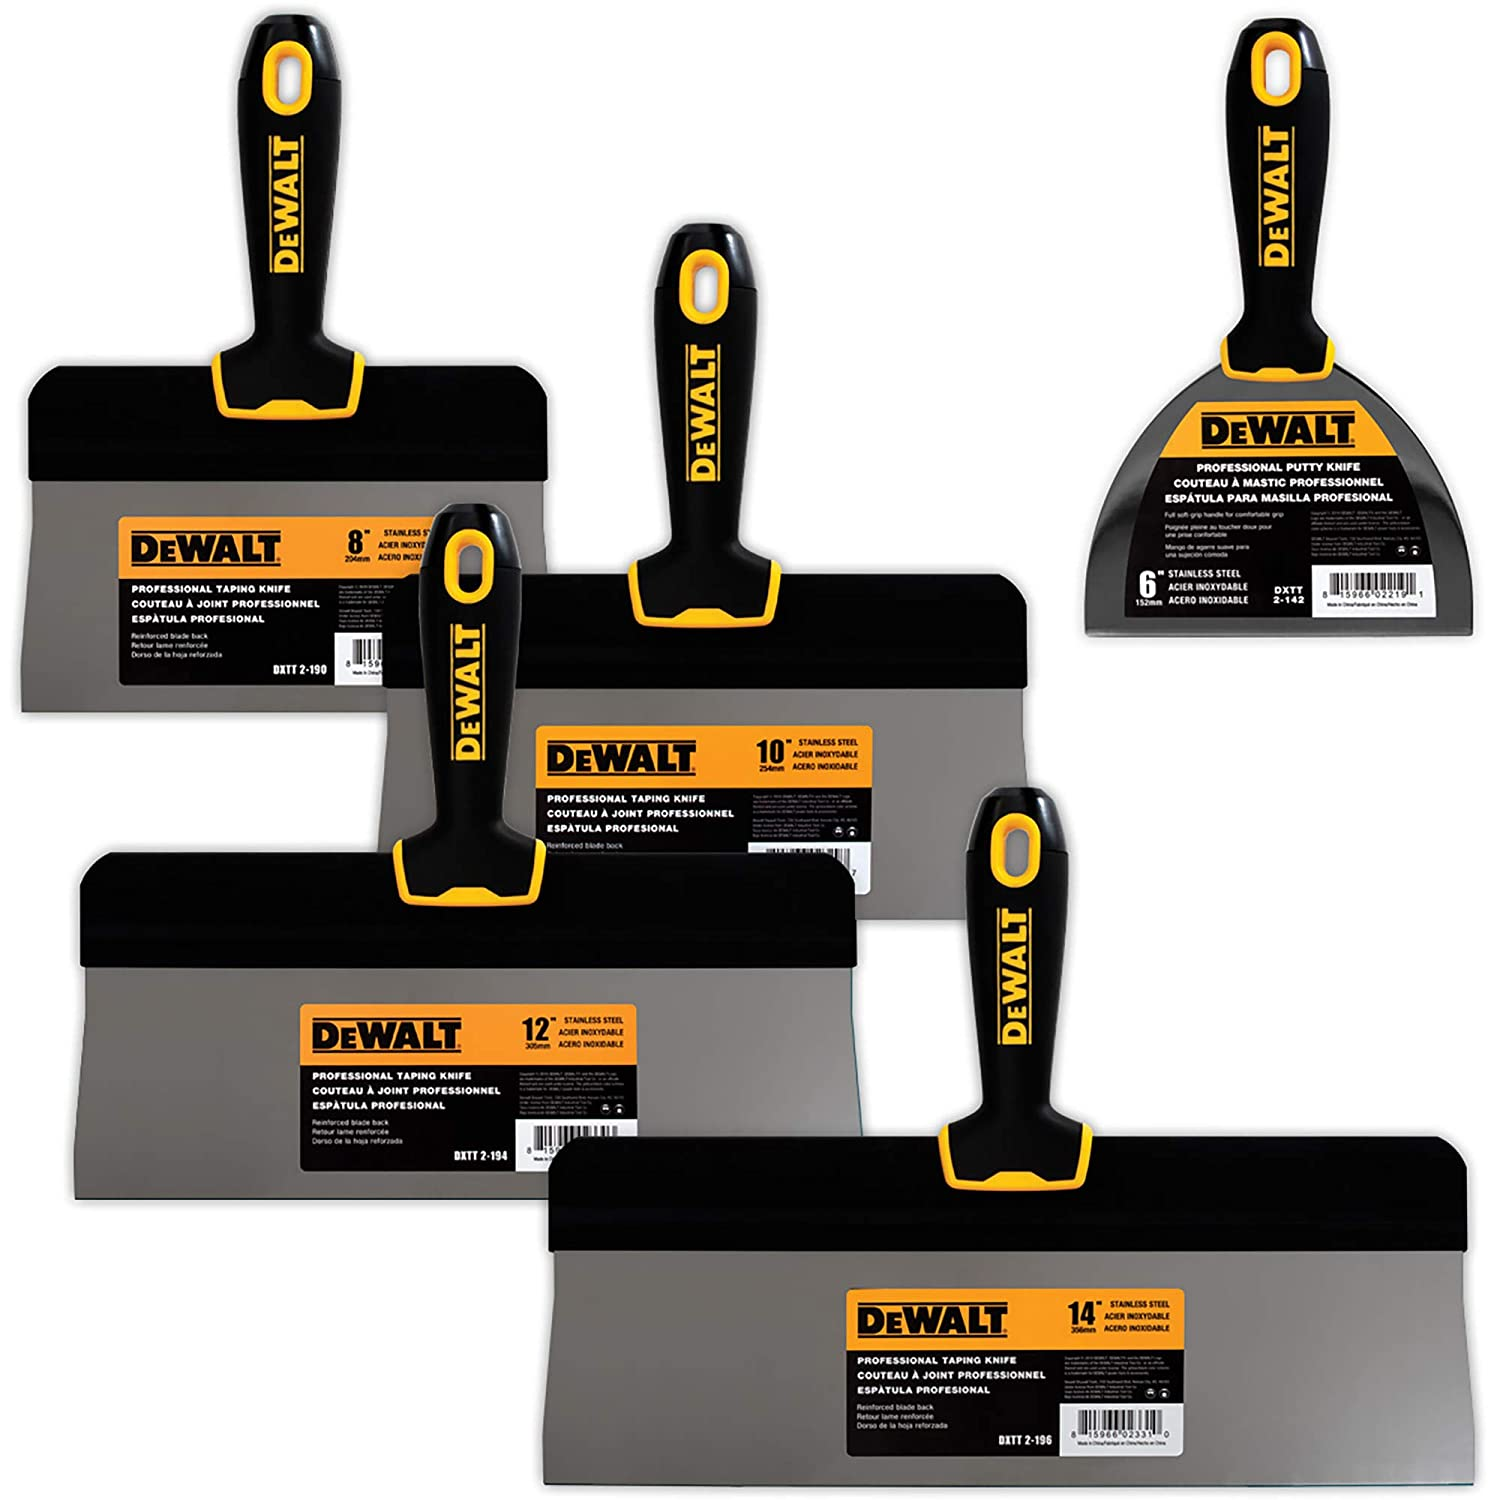 "DEWALT Stainless Steel Big Back Taping Knife 4-Pack + FREE BONUS 6"" Soft Grip Putty Knife 